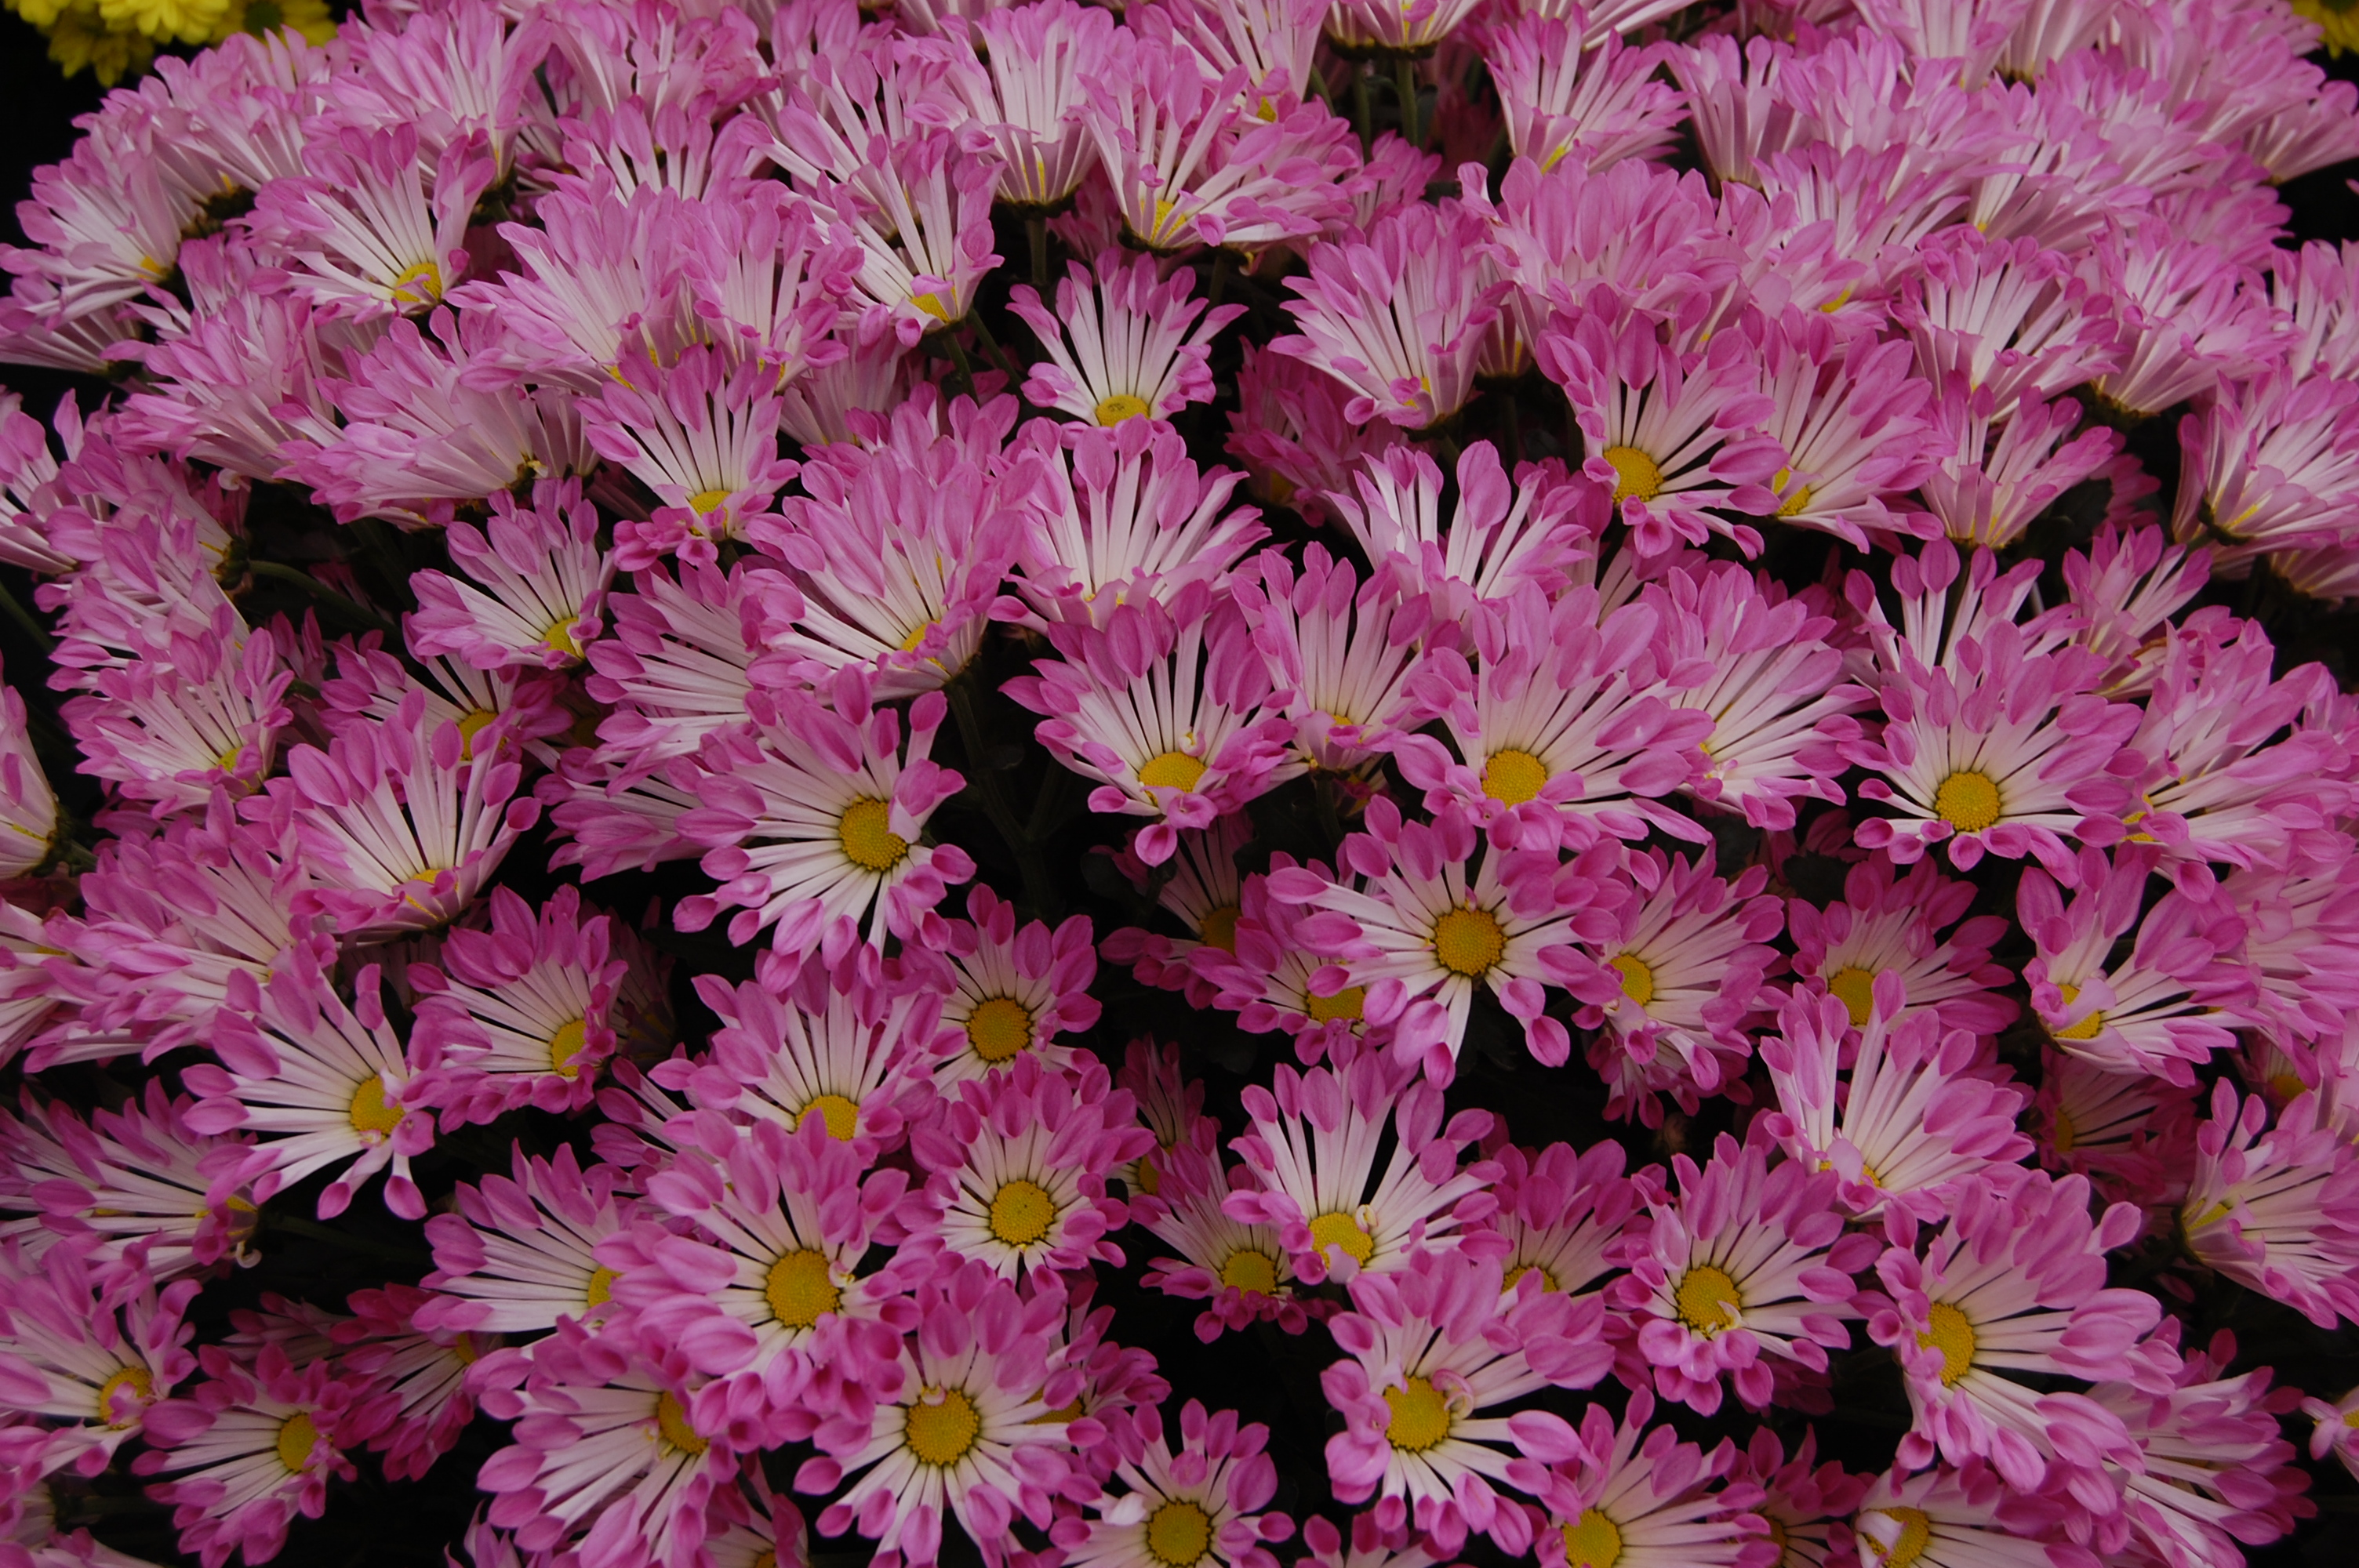 Chrysanthemum-Flowers-wallpaper-wp5804593